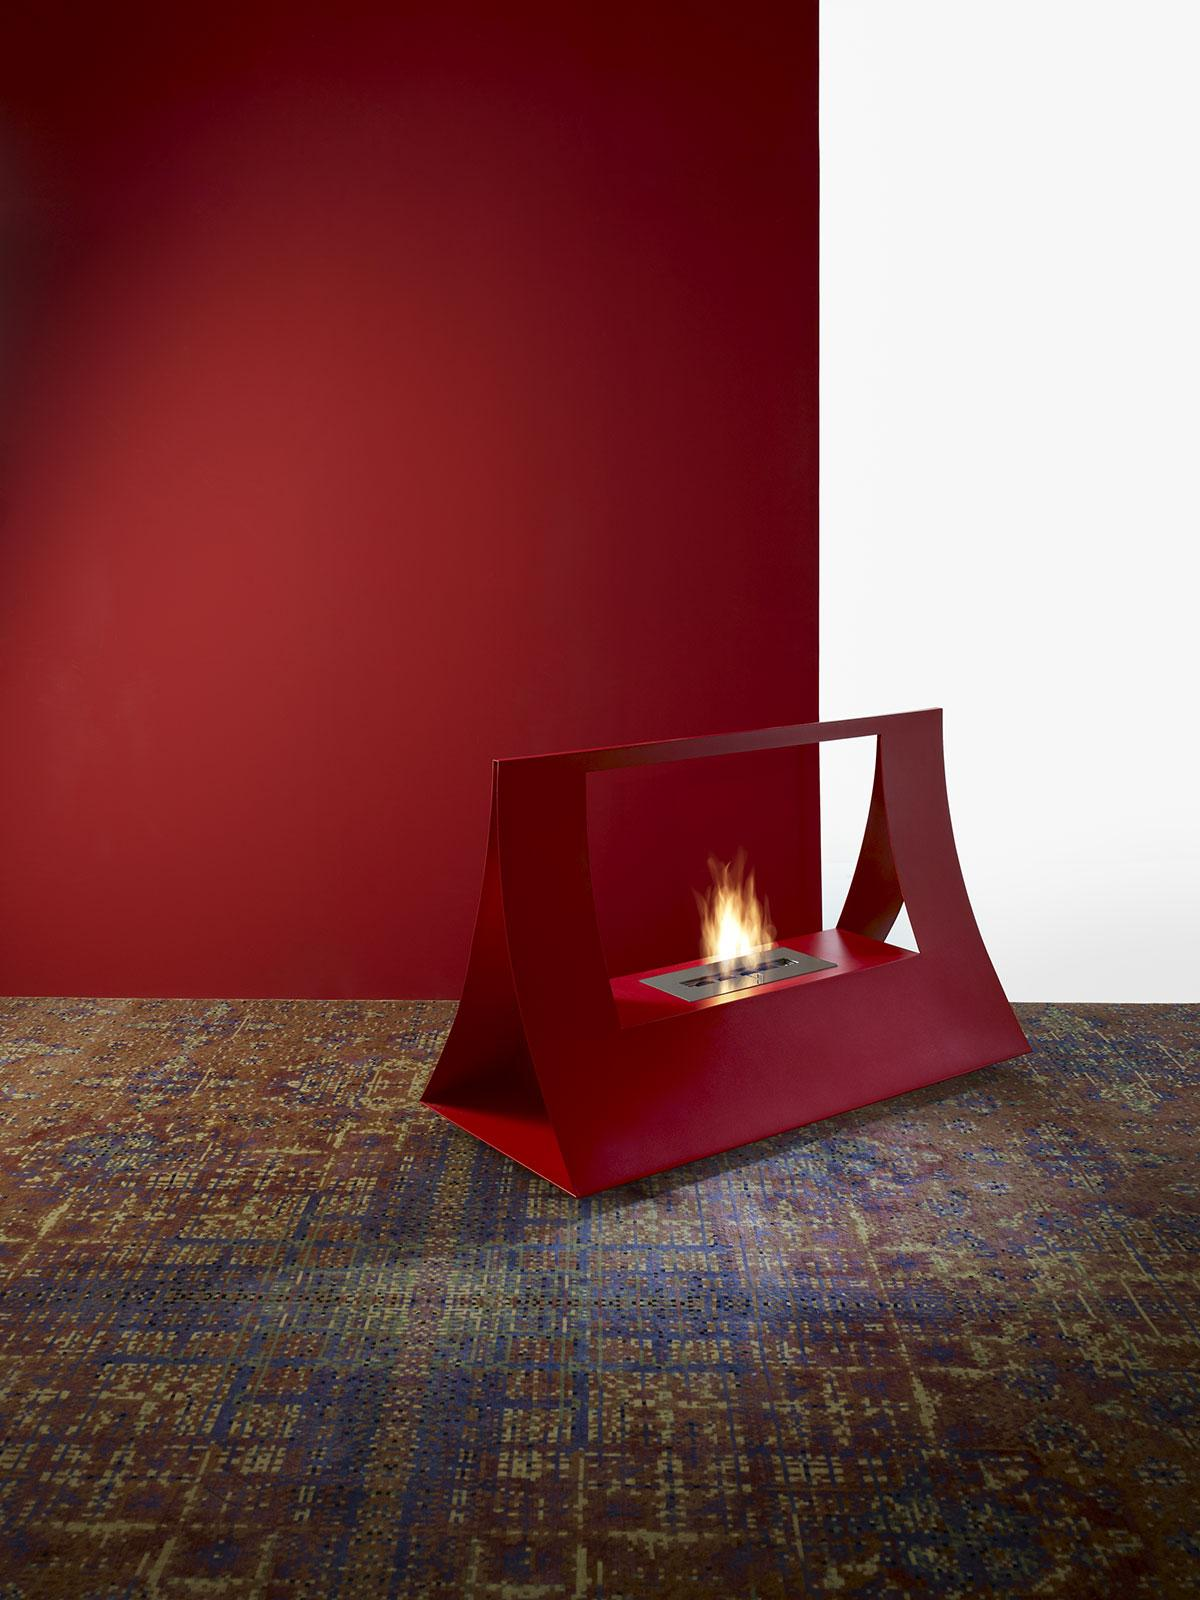 portable bio ethanol fireplace furniture stores shops choice design delivery factors sale home homestore house italia makers manufacturers quality retailers websites fireplace bioethanol